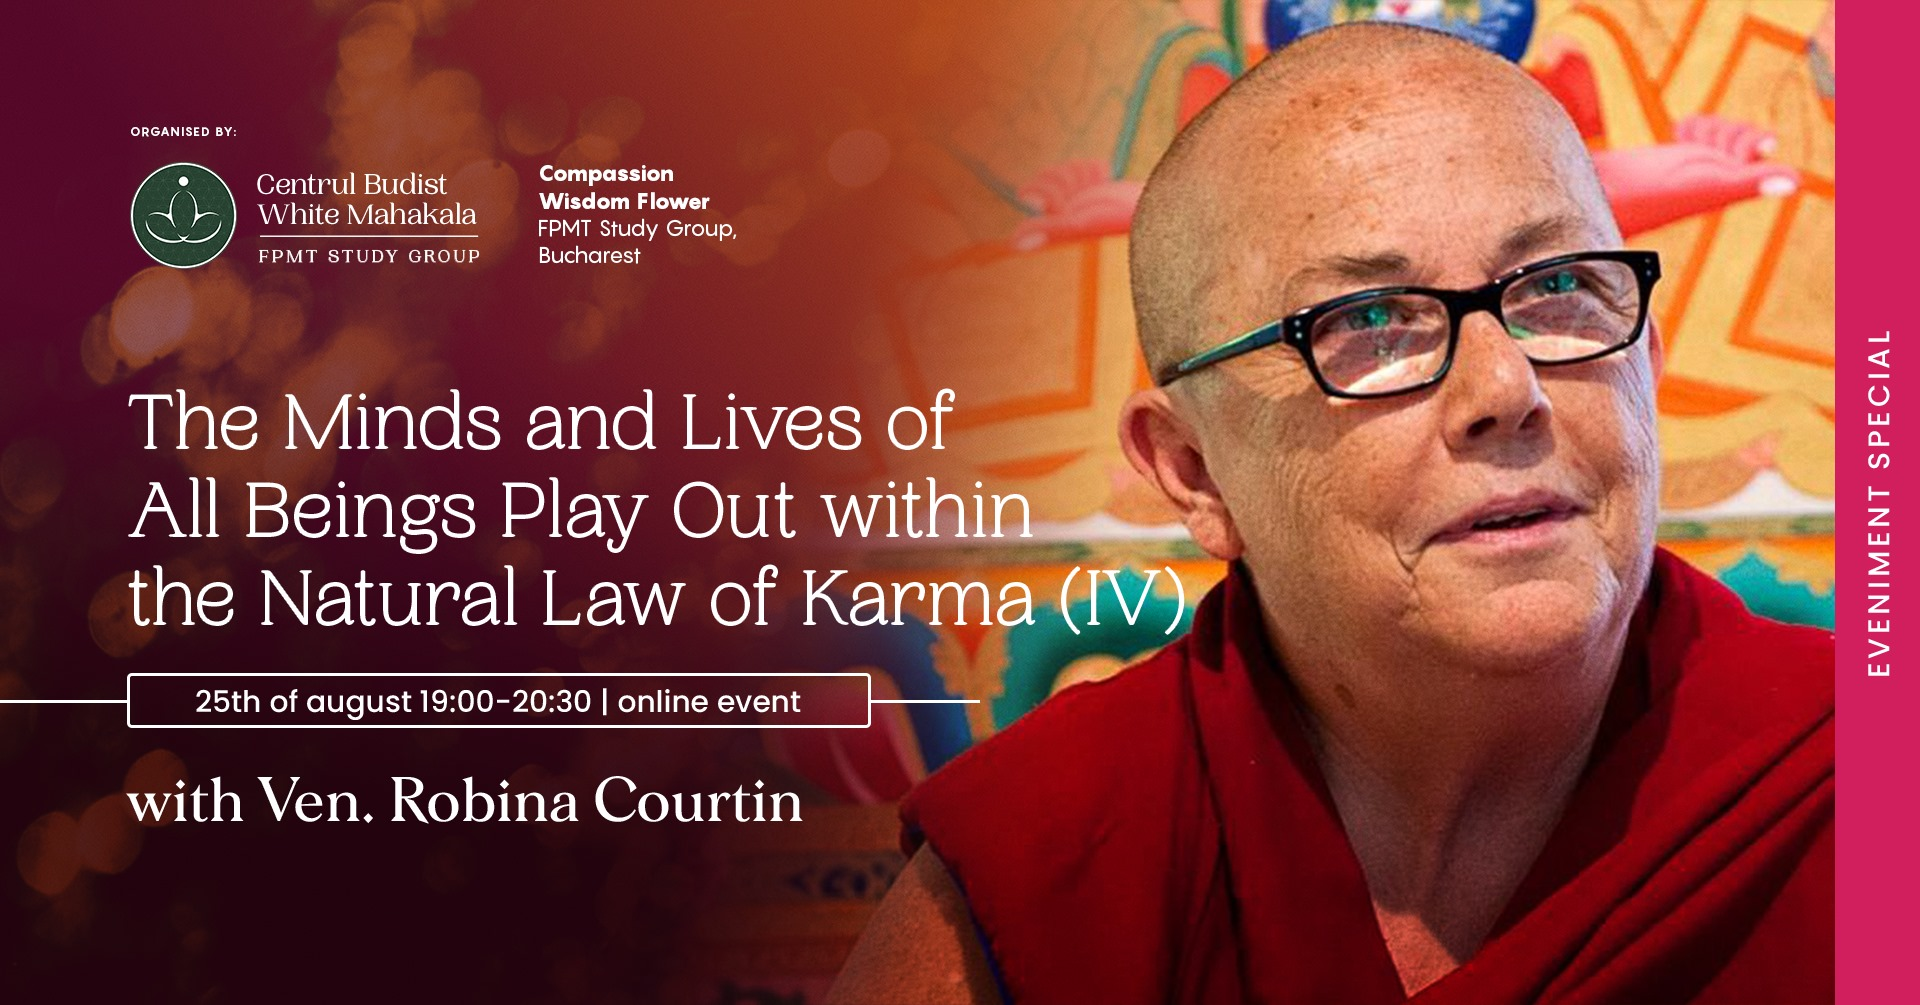 The Minds and Lives of All Beings Play Out within the Natural Law of Karma(IV)